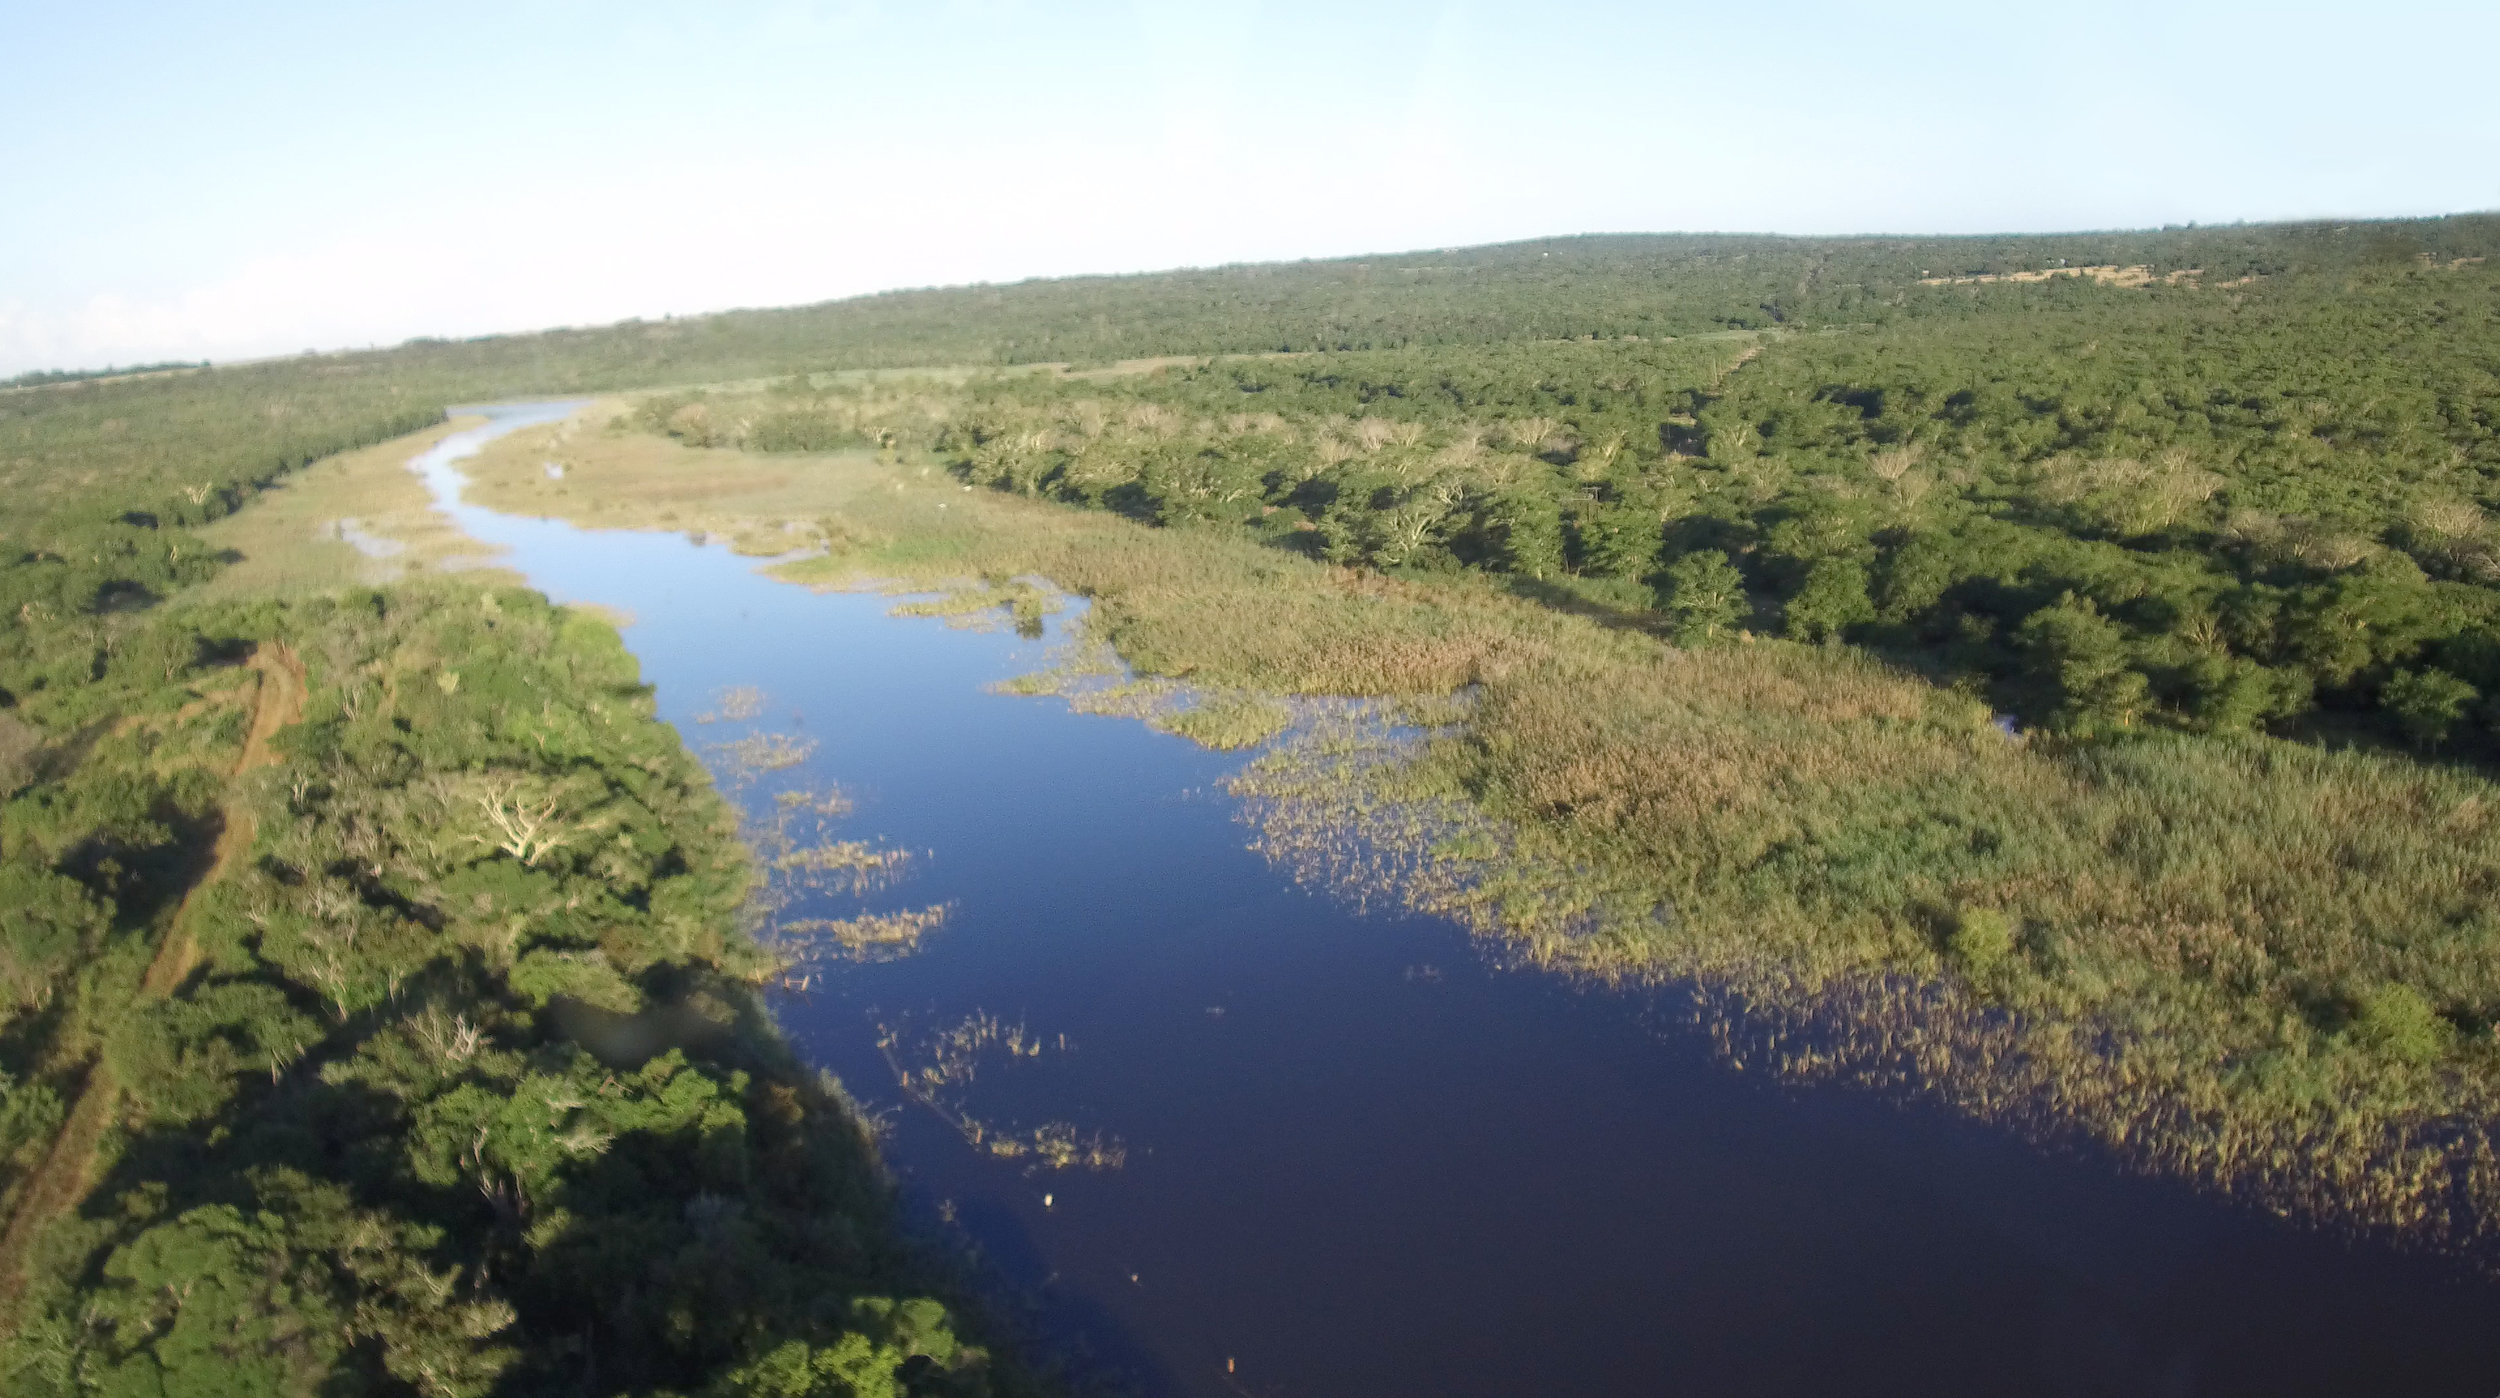 The 1,170 acre Mfuleni Conservancy from the air, looking down on the Msinene River.